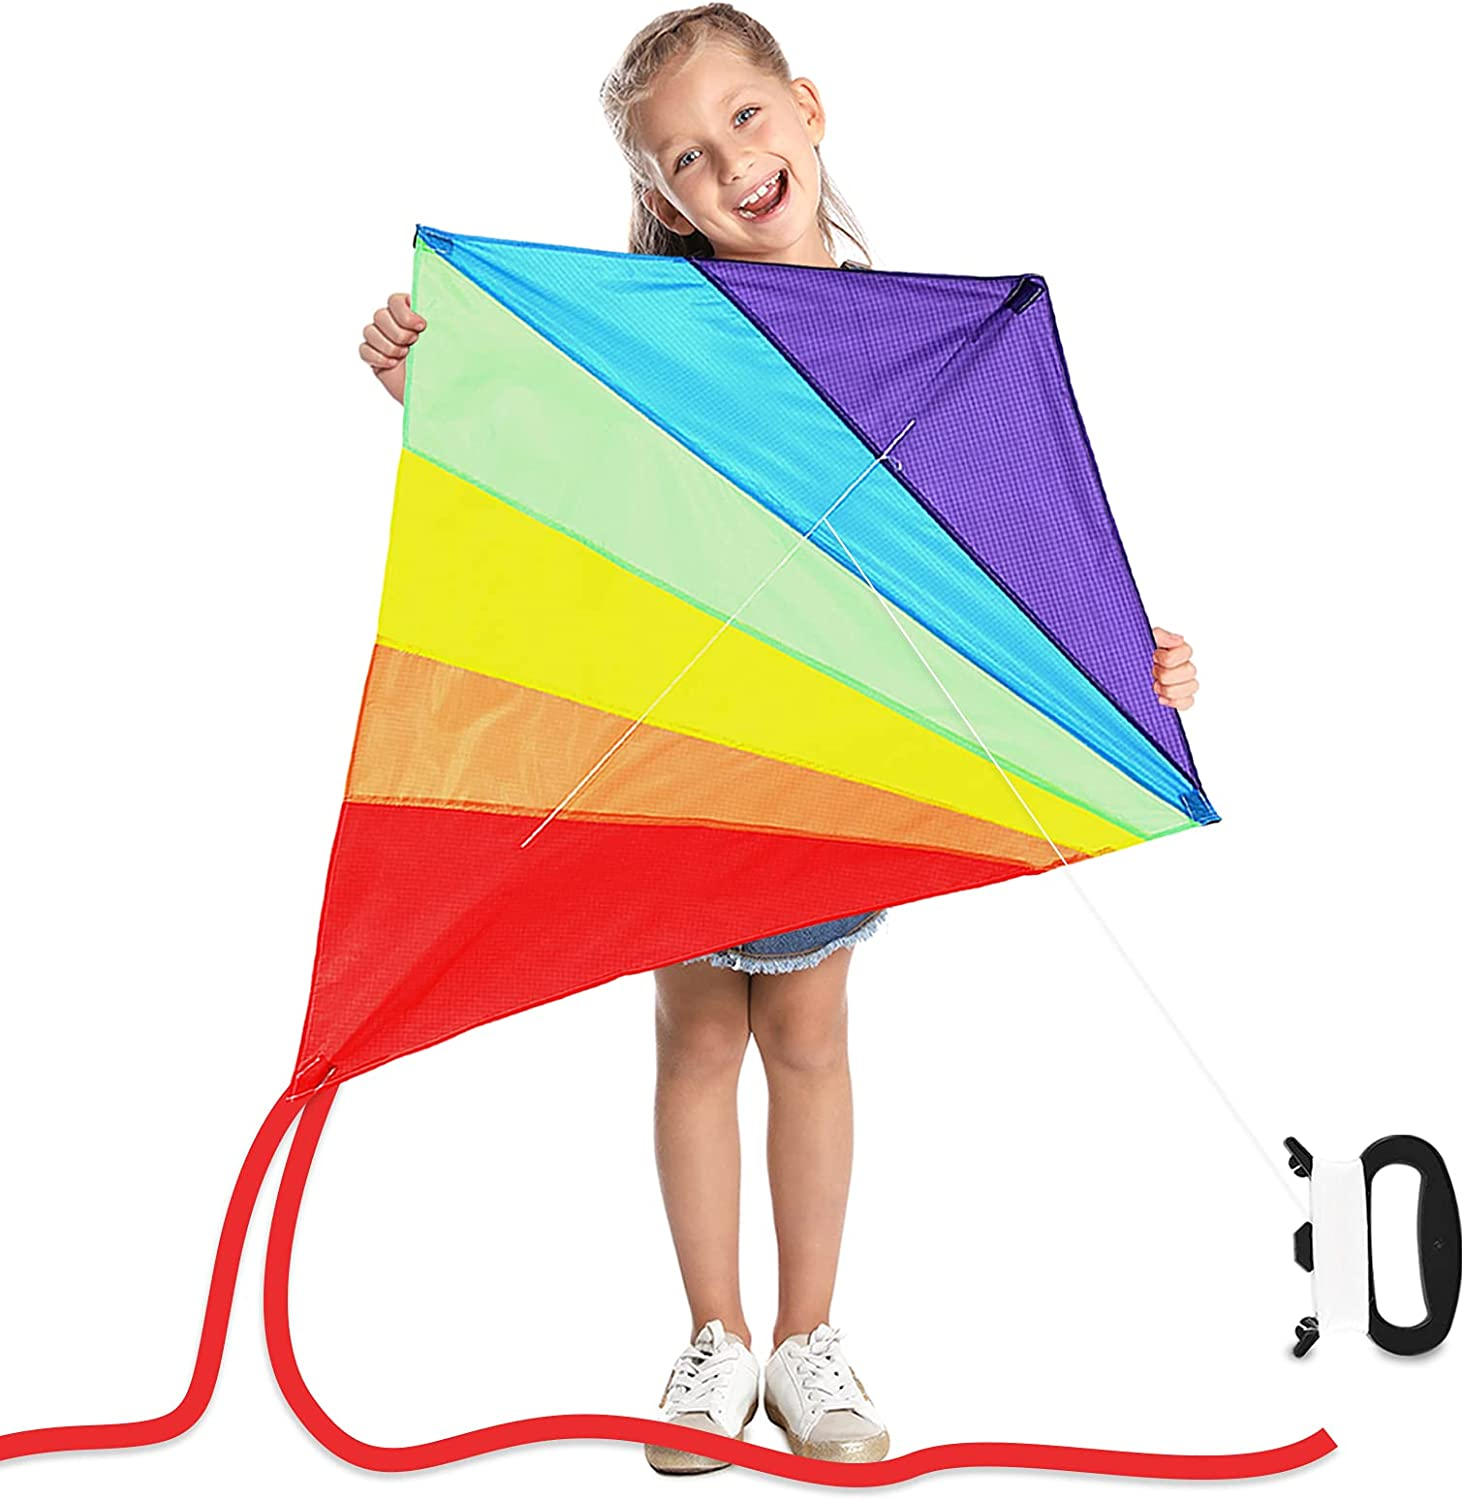 Rainbow Kite Single Line Easy Flyer Kids Ranking integrated 1st place Diamond for shipfree